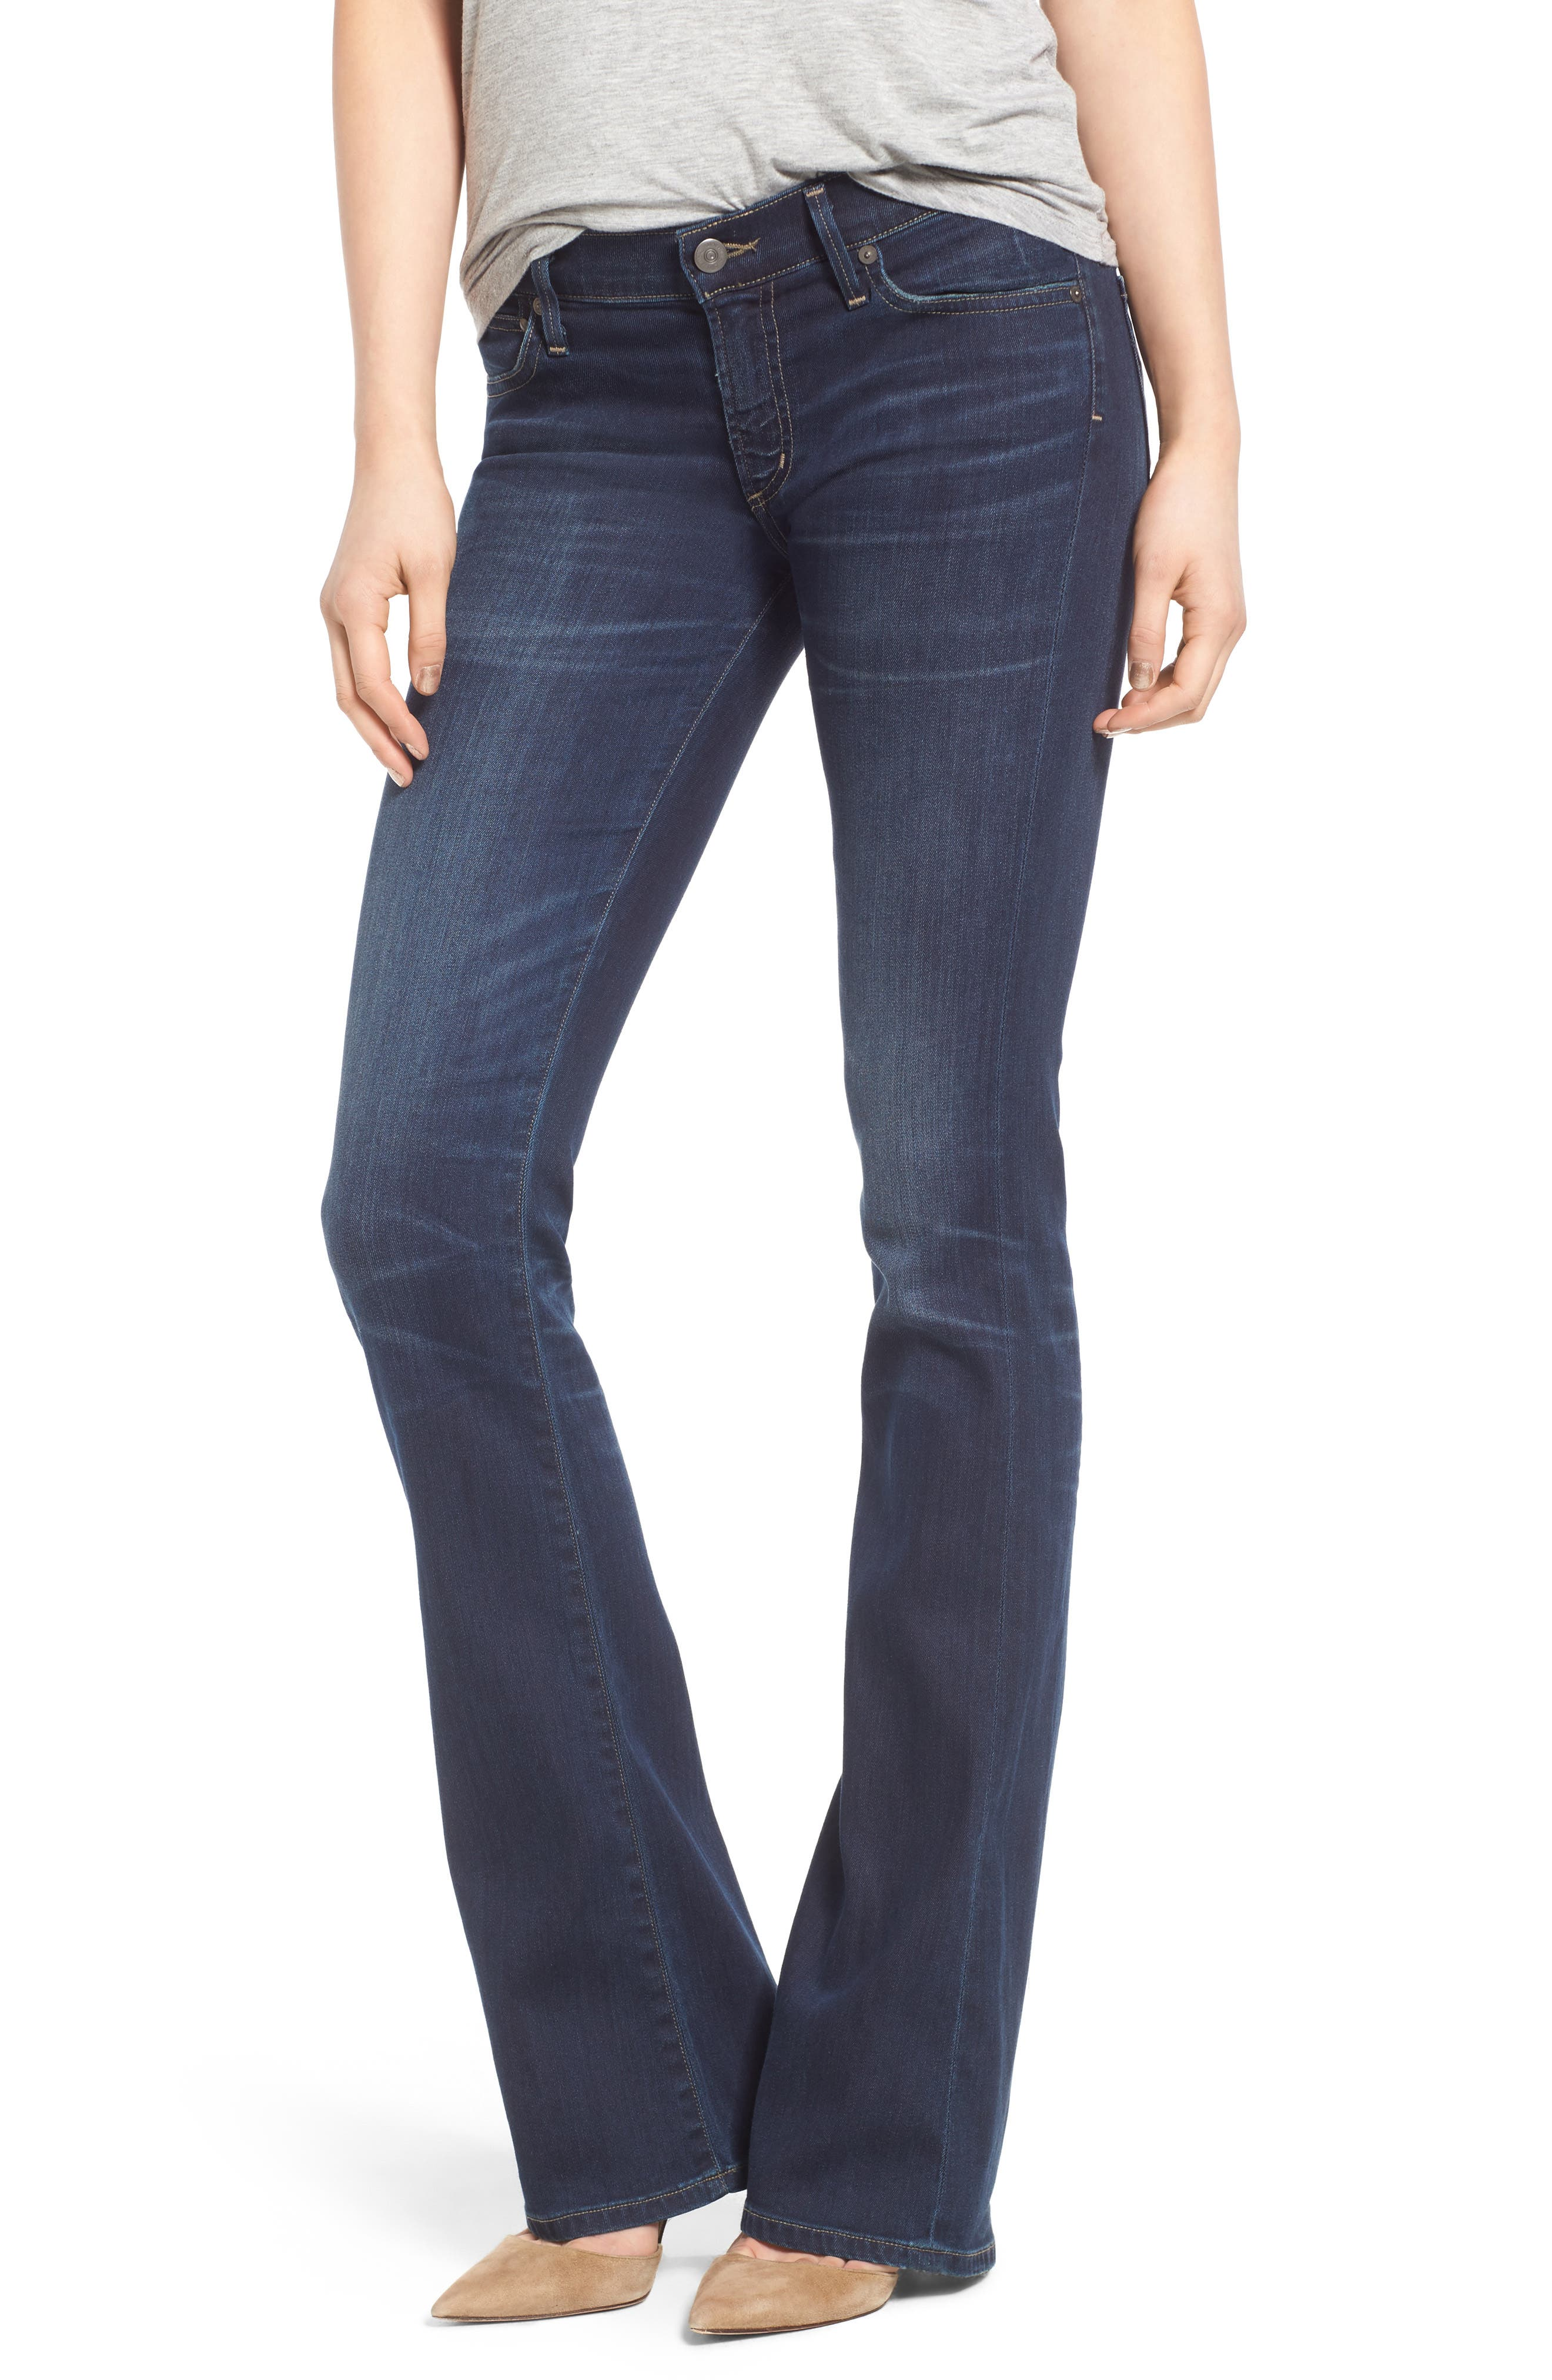 Alternate Image 1 Selected - Citizens of Humanity Emmanuelle Slim Bootcut Jeans (Ellis)